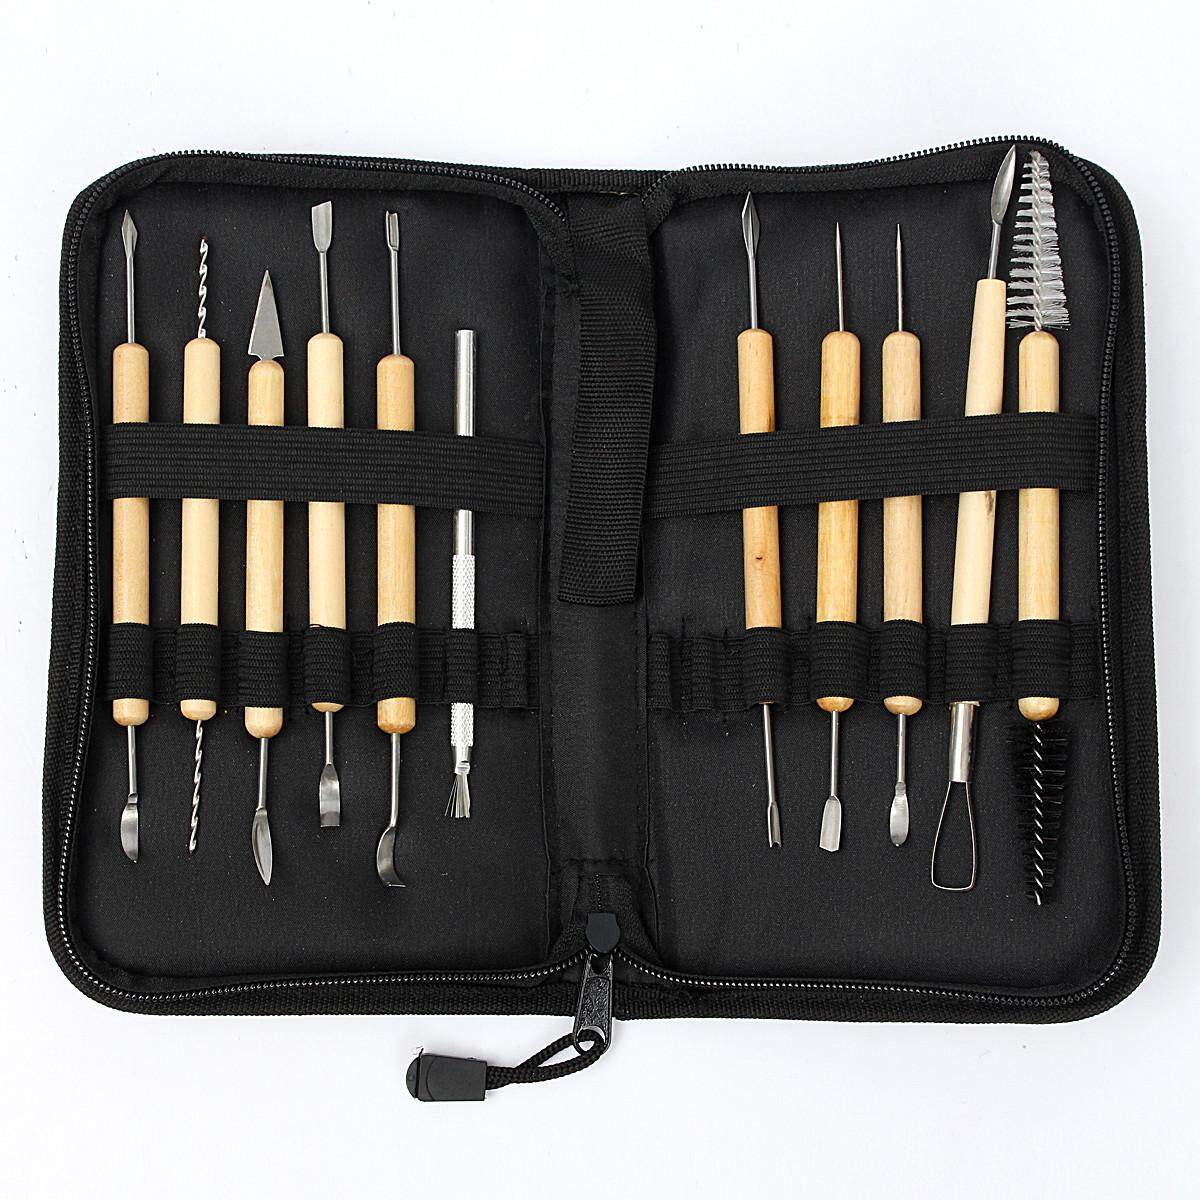 1Ppcs Clay Sculpting Wax Carving Pottery Tools Shapers Polymer Modeling Set +Bag